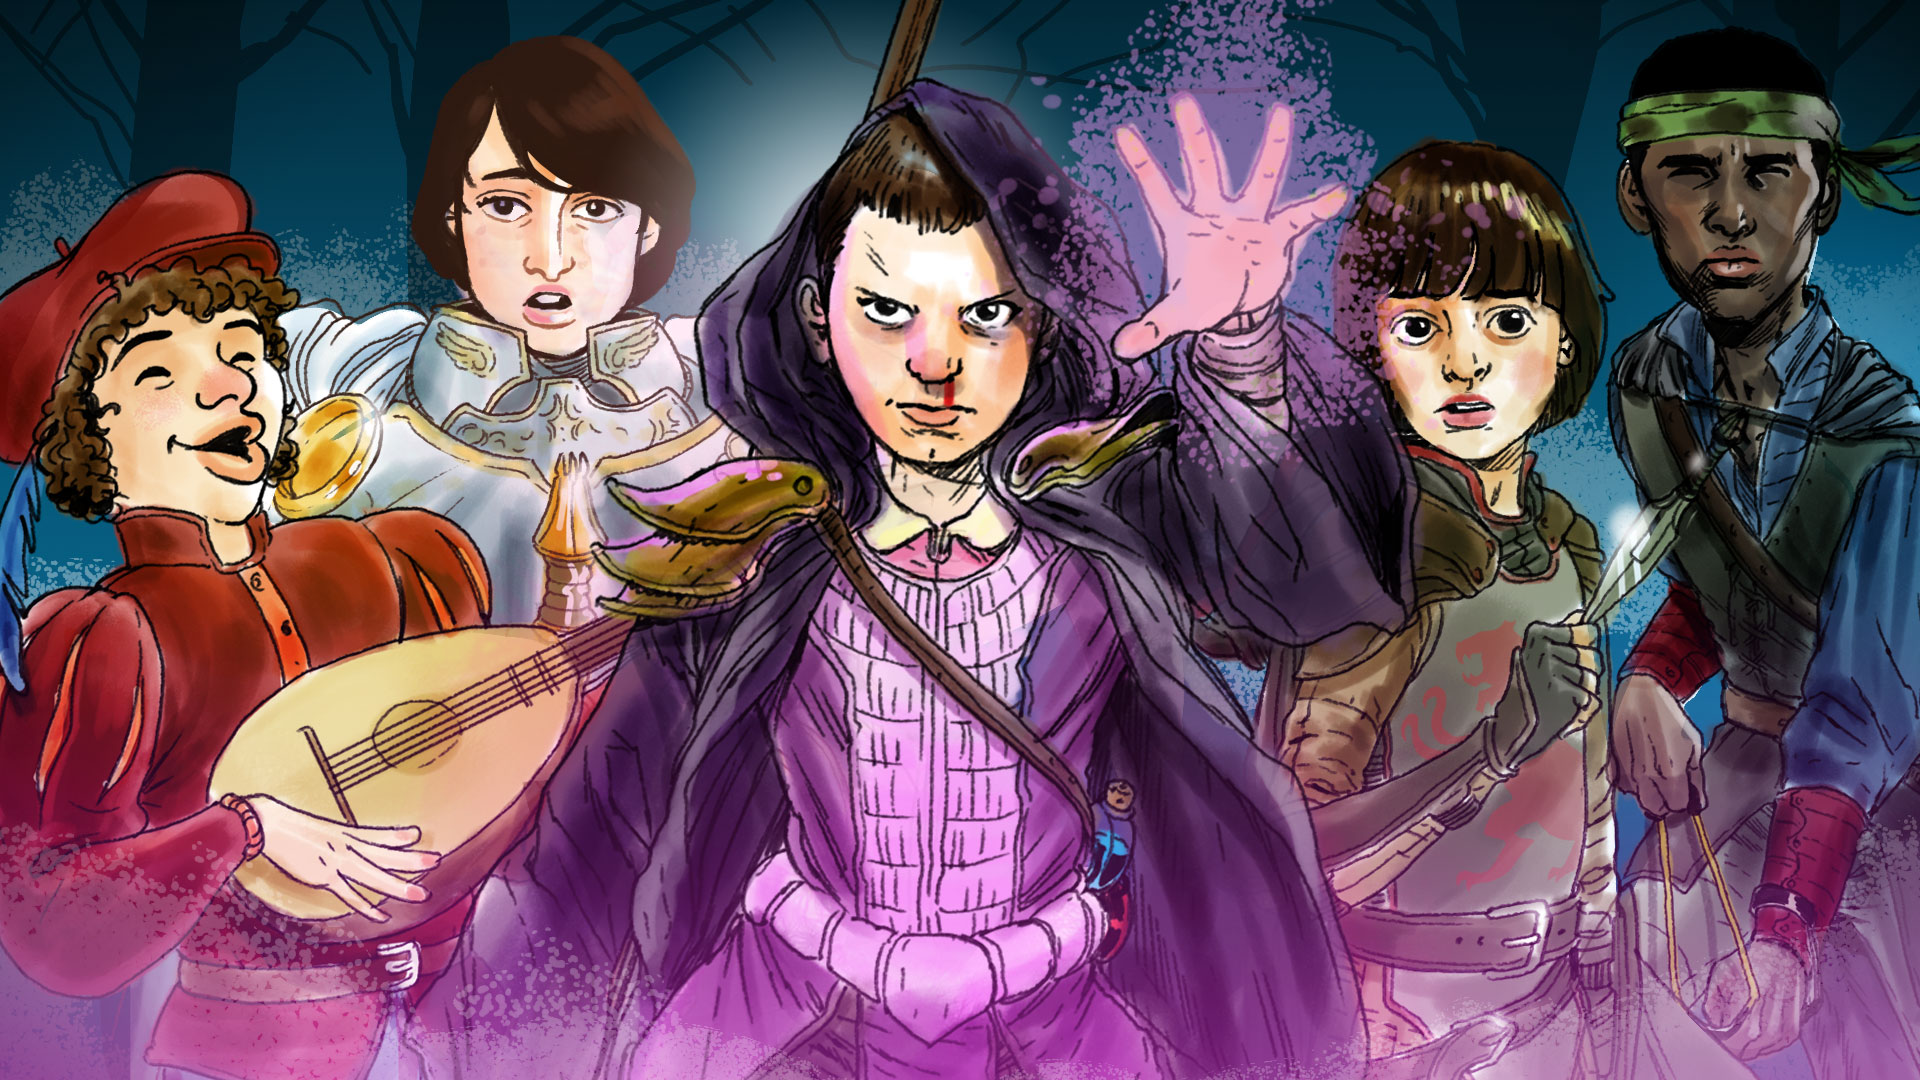 The Stranger Things Kids Reimagined As Dungeons Dragons Characters